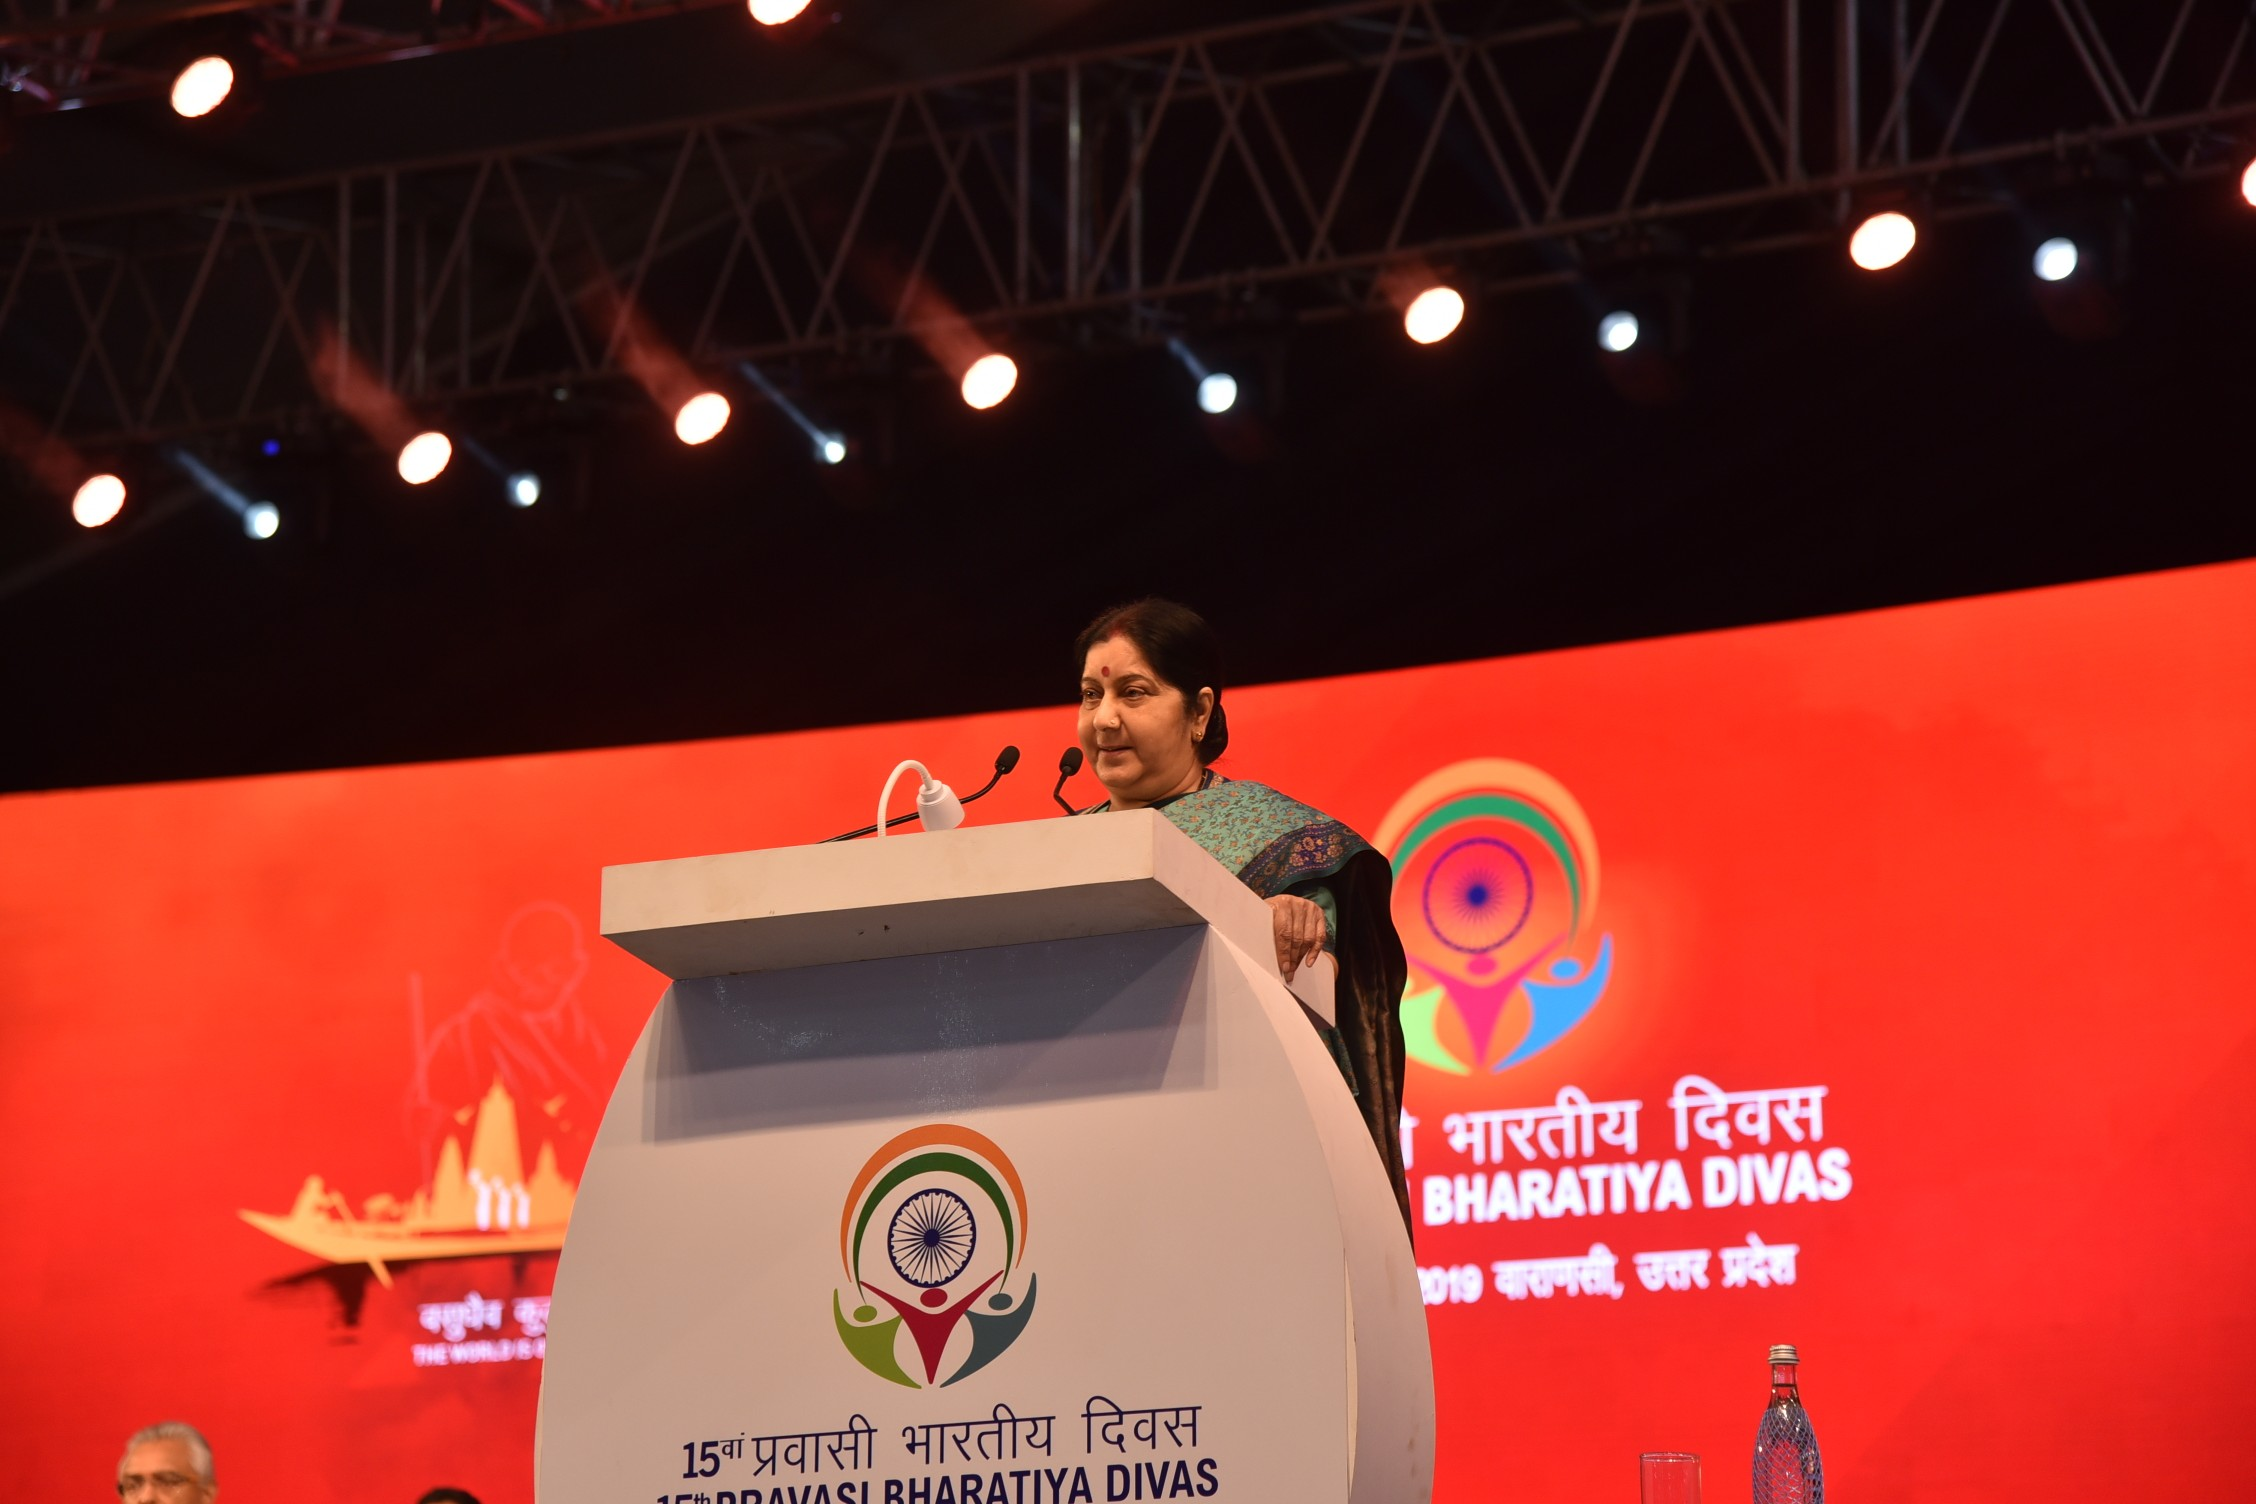 External Affairs Minister delivers welcome address in varanasi during pbd 2019